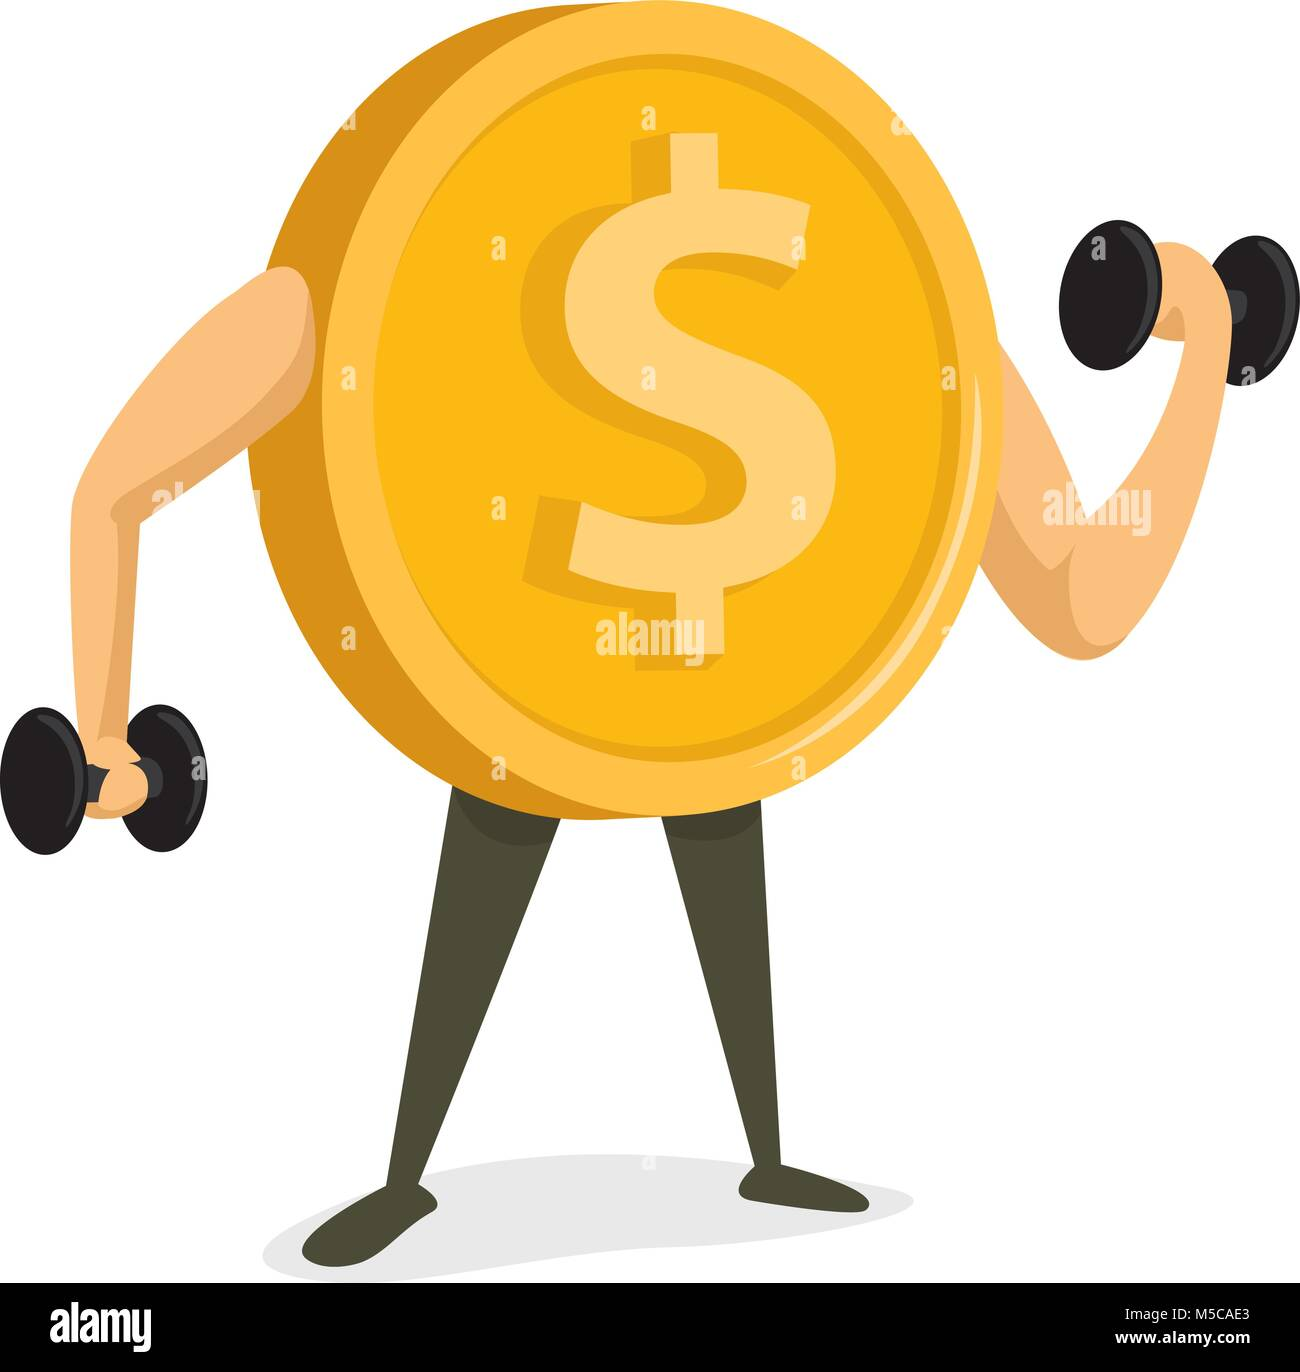 Cartoon illustration of coin working out or strong currency - Stock Vector